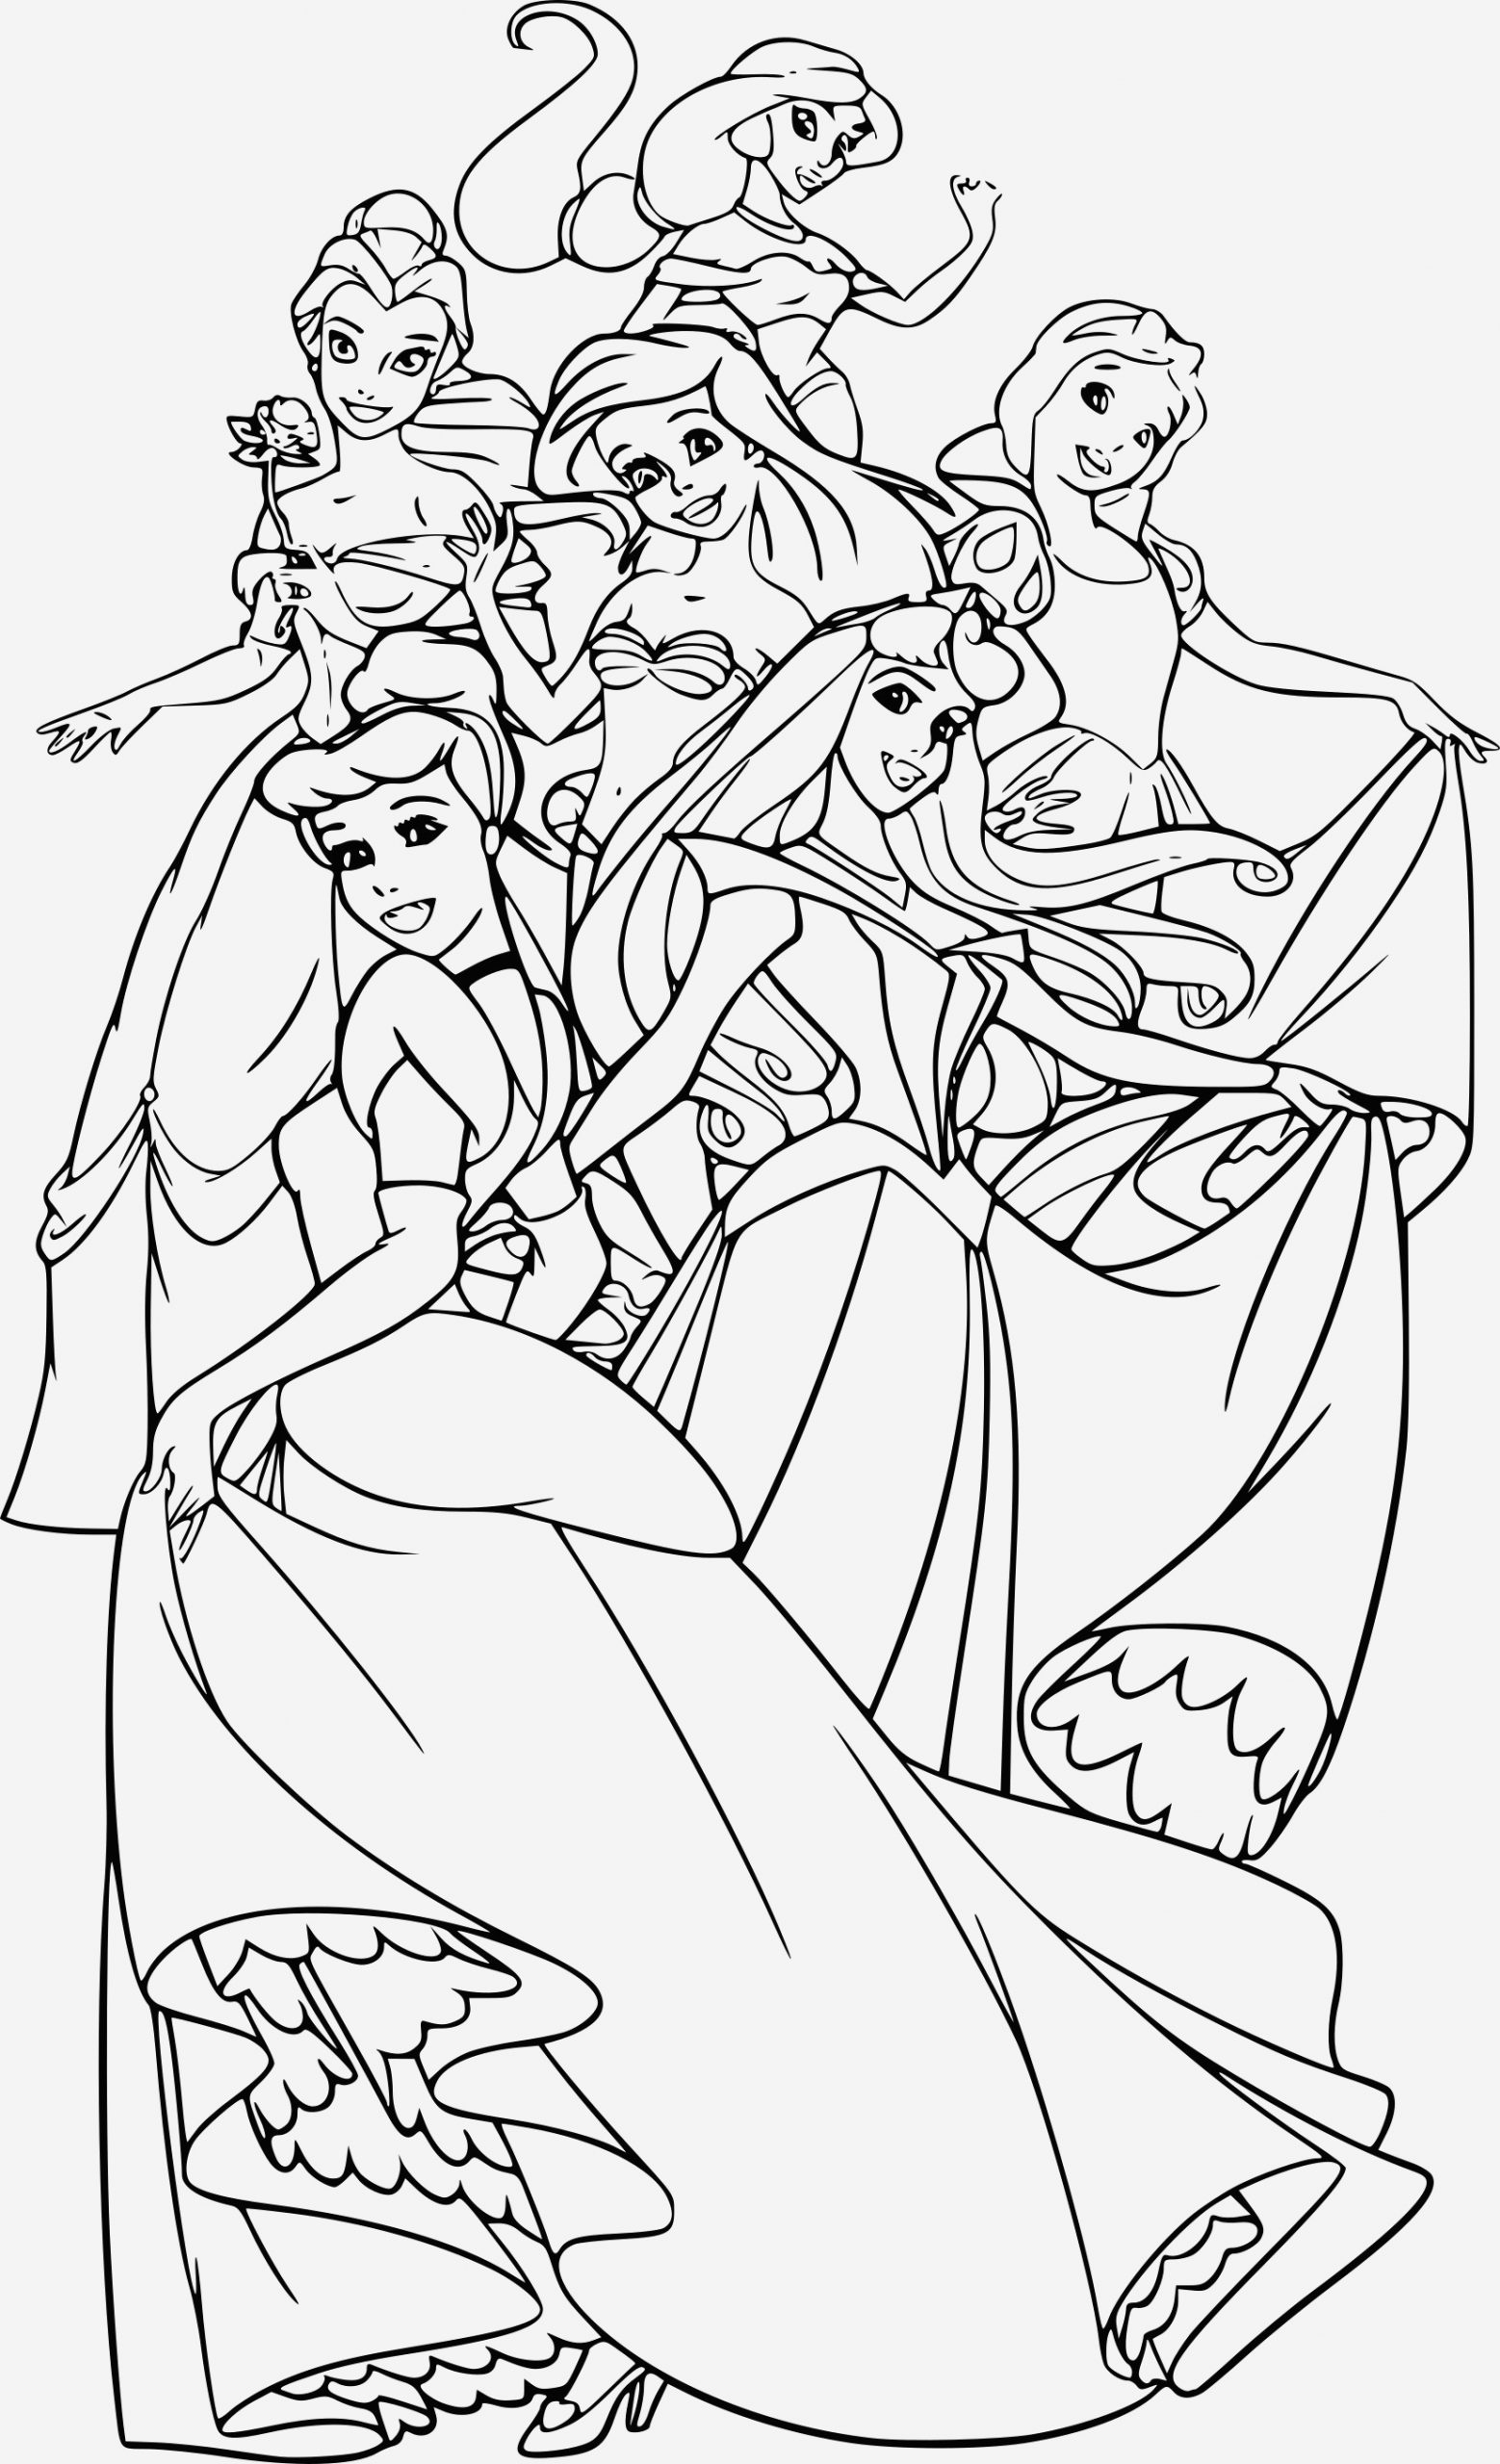 Coloriage De Princesses Disney A Imprimer Lovely Coloriage Princesse Disney   Imprimer Sur Coloriages Fo Of Coloriage De Princesses Disney A Imprimer